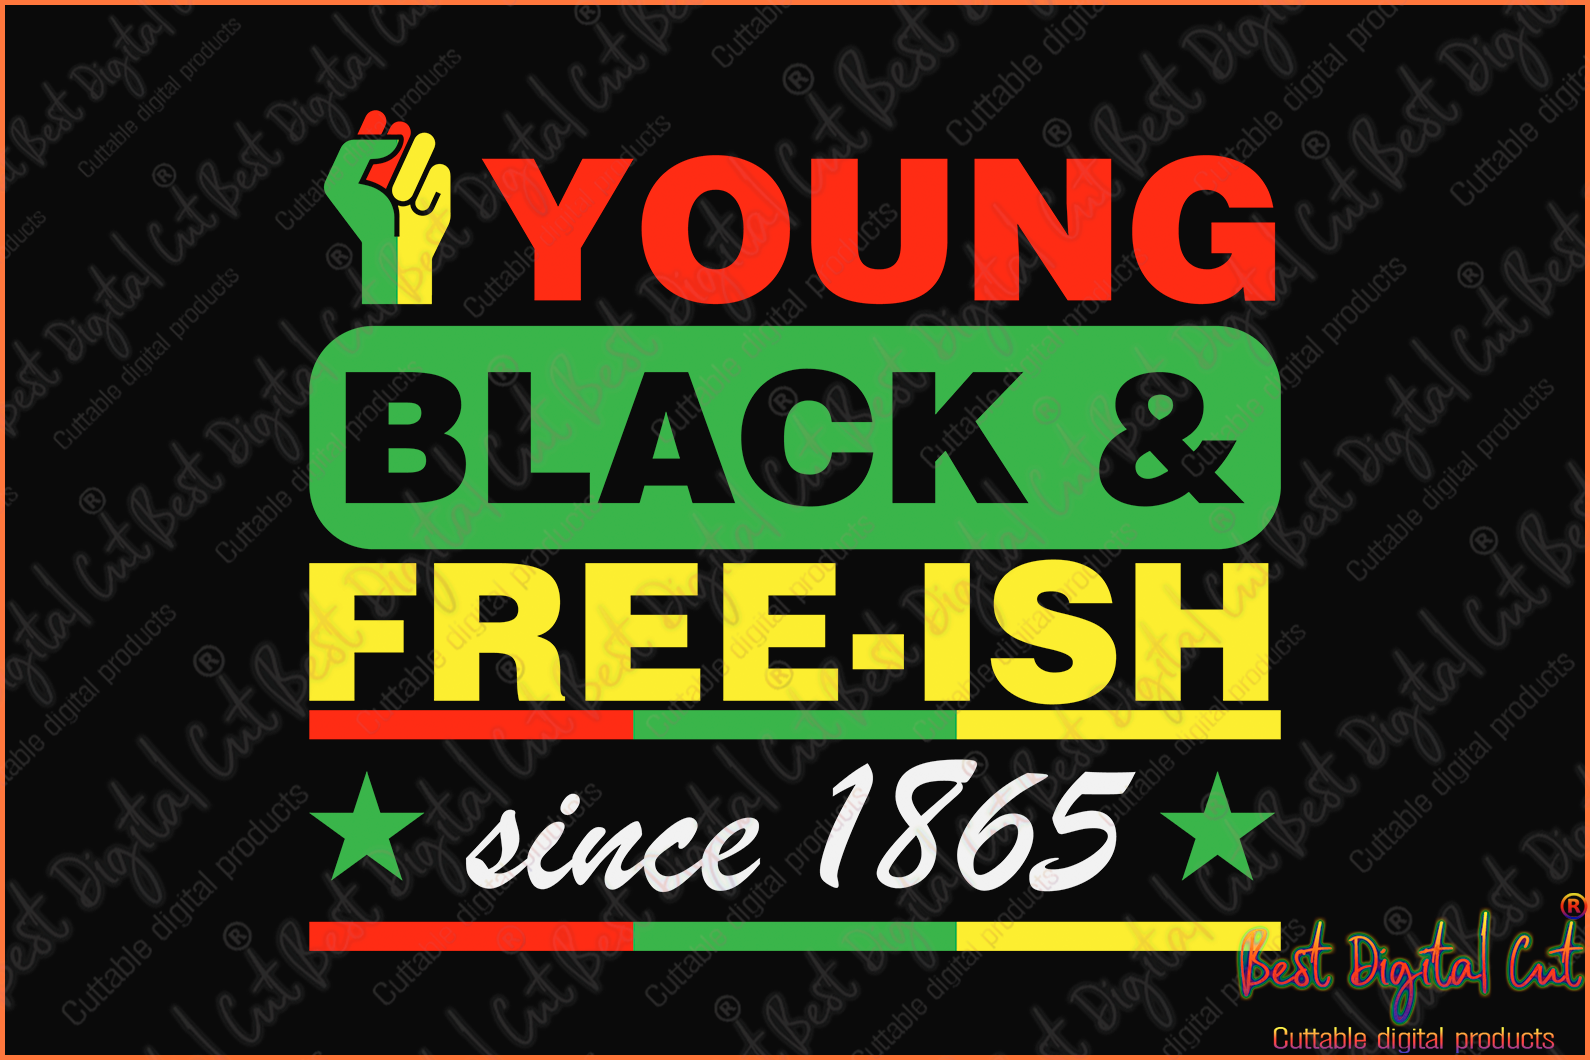 Young black free ish since 1865 svg,Juneteenth 1865 svg,freedom day svg,jubilee day svg,American holiday,June 19th svg,1776 July 4th,emancipation day svg,independence day svg,black African hands,American pride gift,black lives matter shirt,